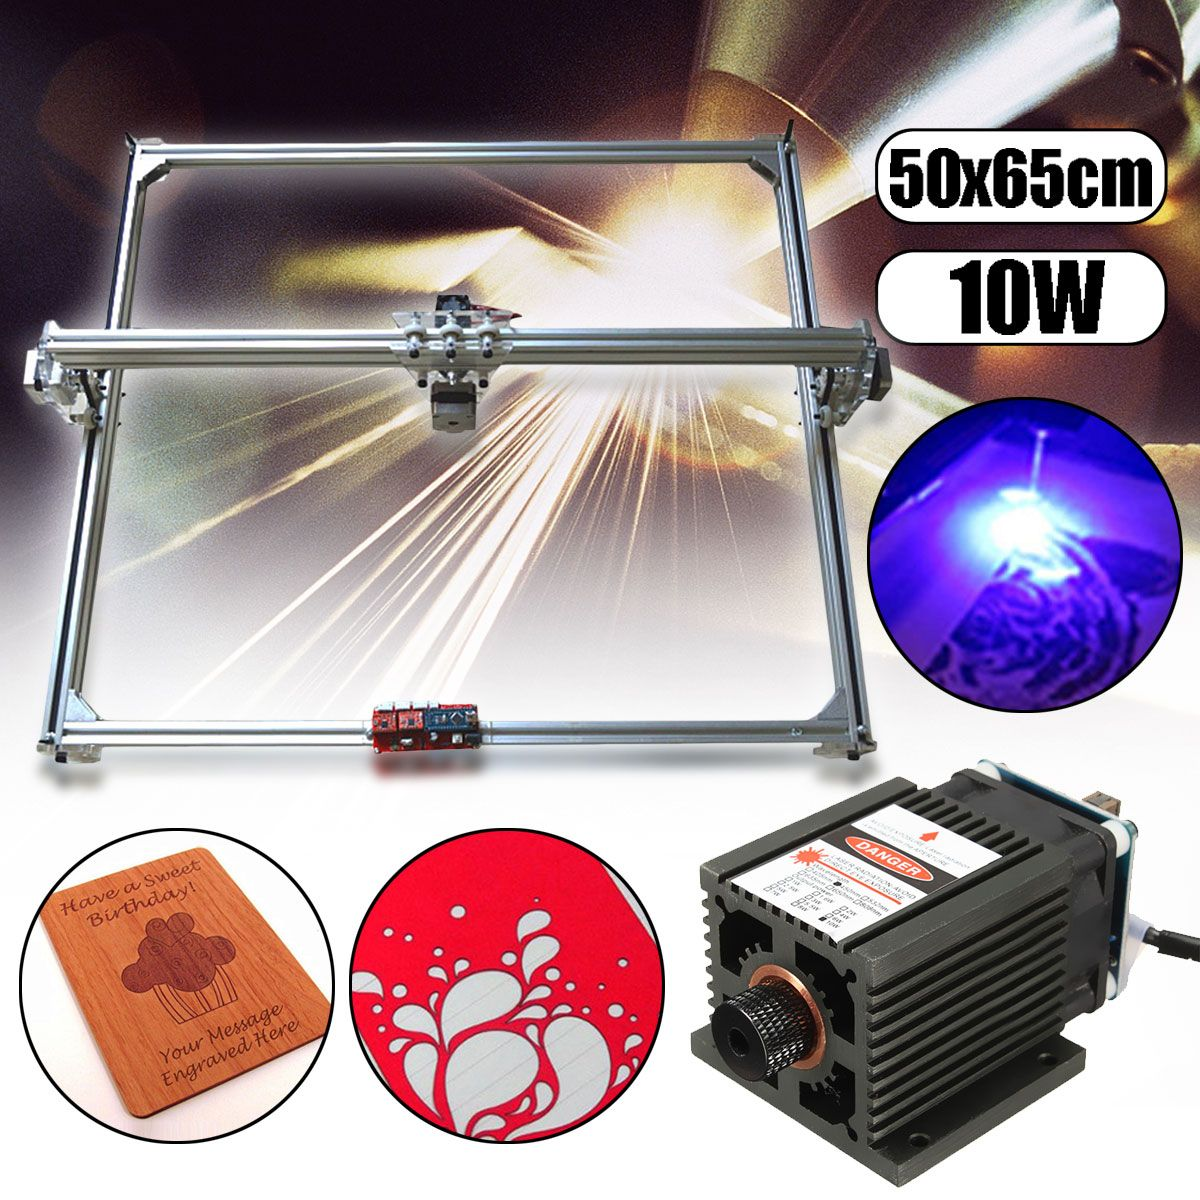 50*65cm Area Mini Laser Engraving Cutting Machine Printer DC 12V Wood Cutter + 10W Blue Laser Head Power Adjust DIY Desktop Kit